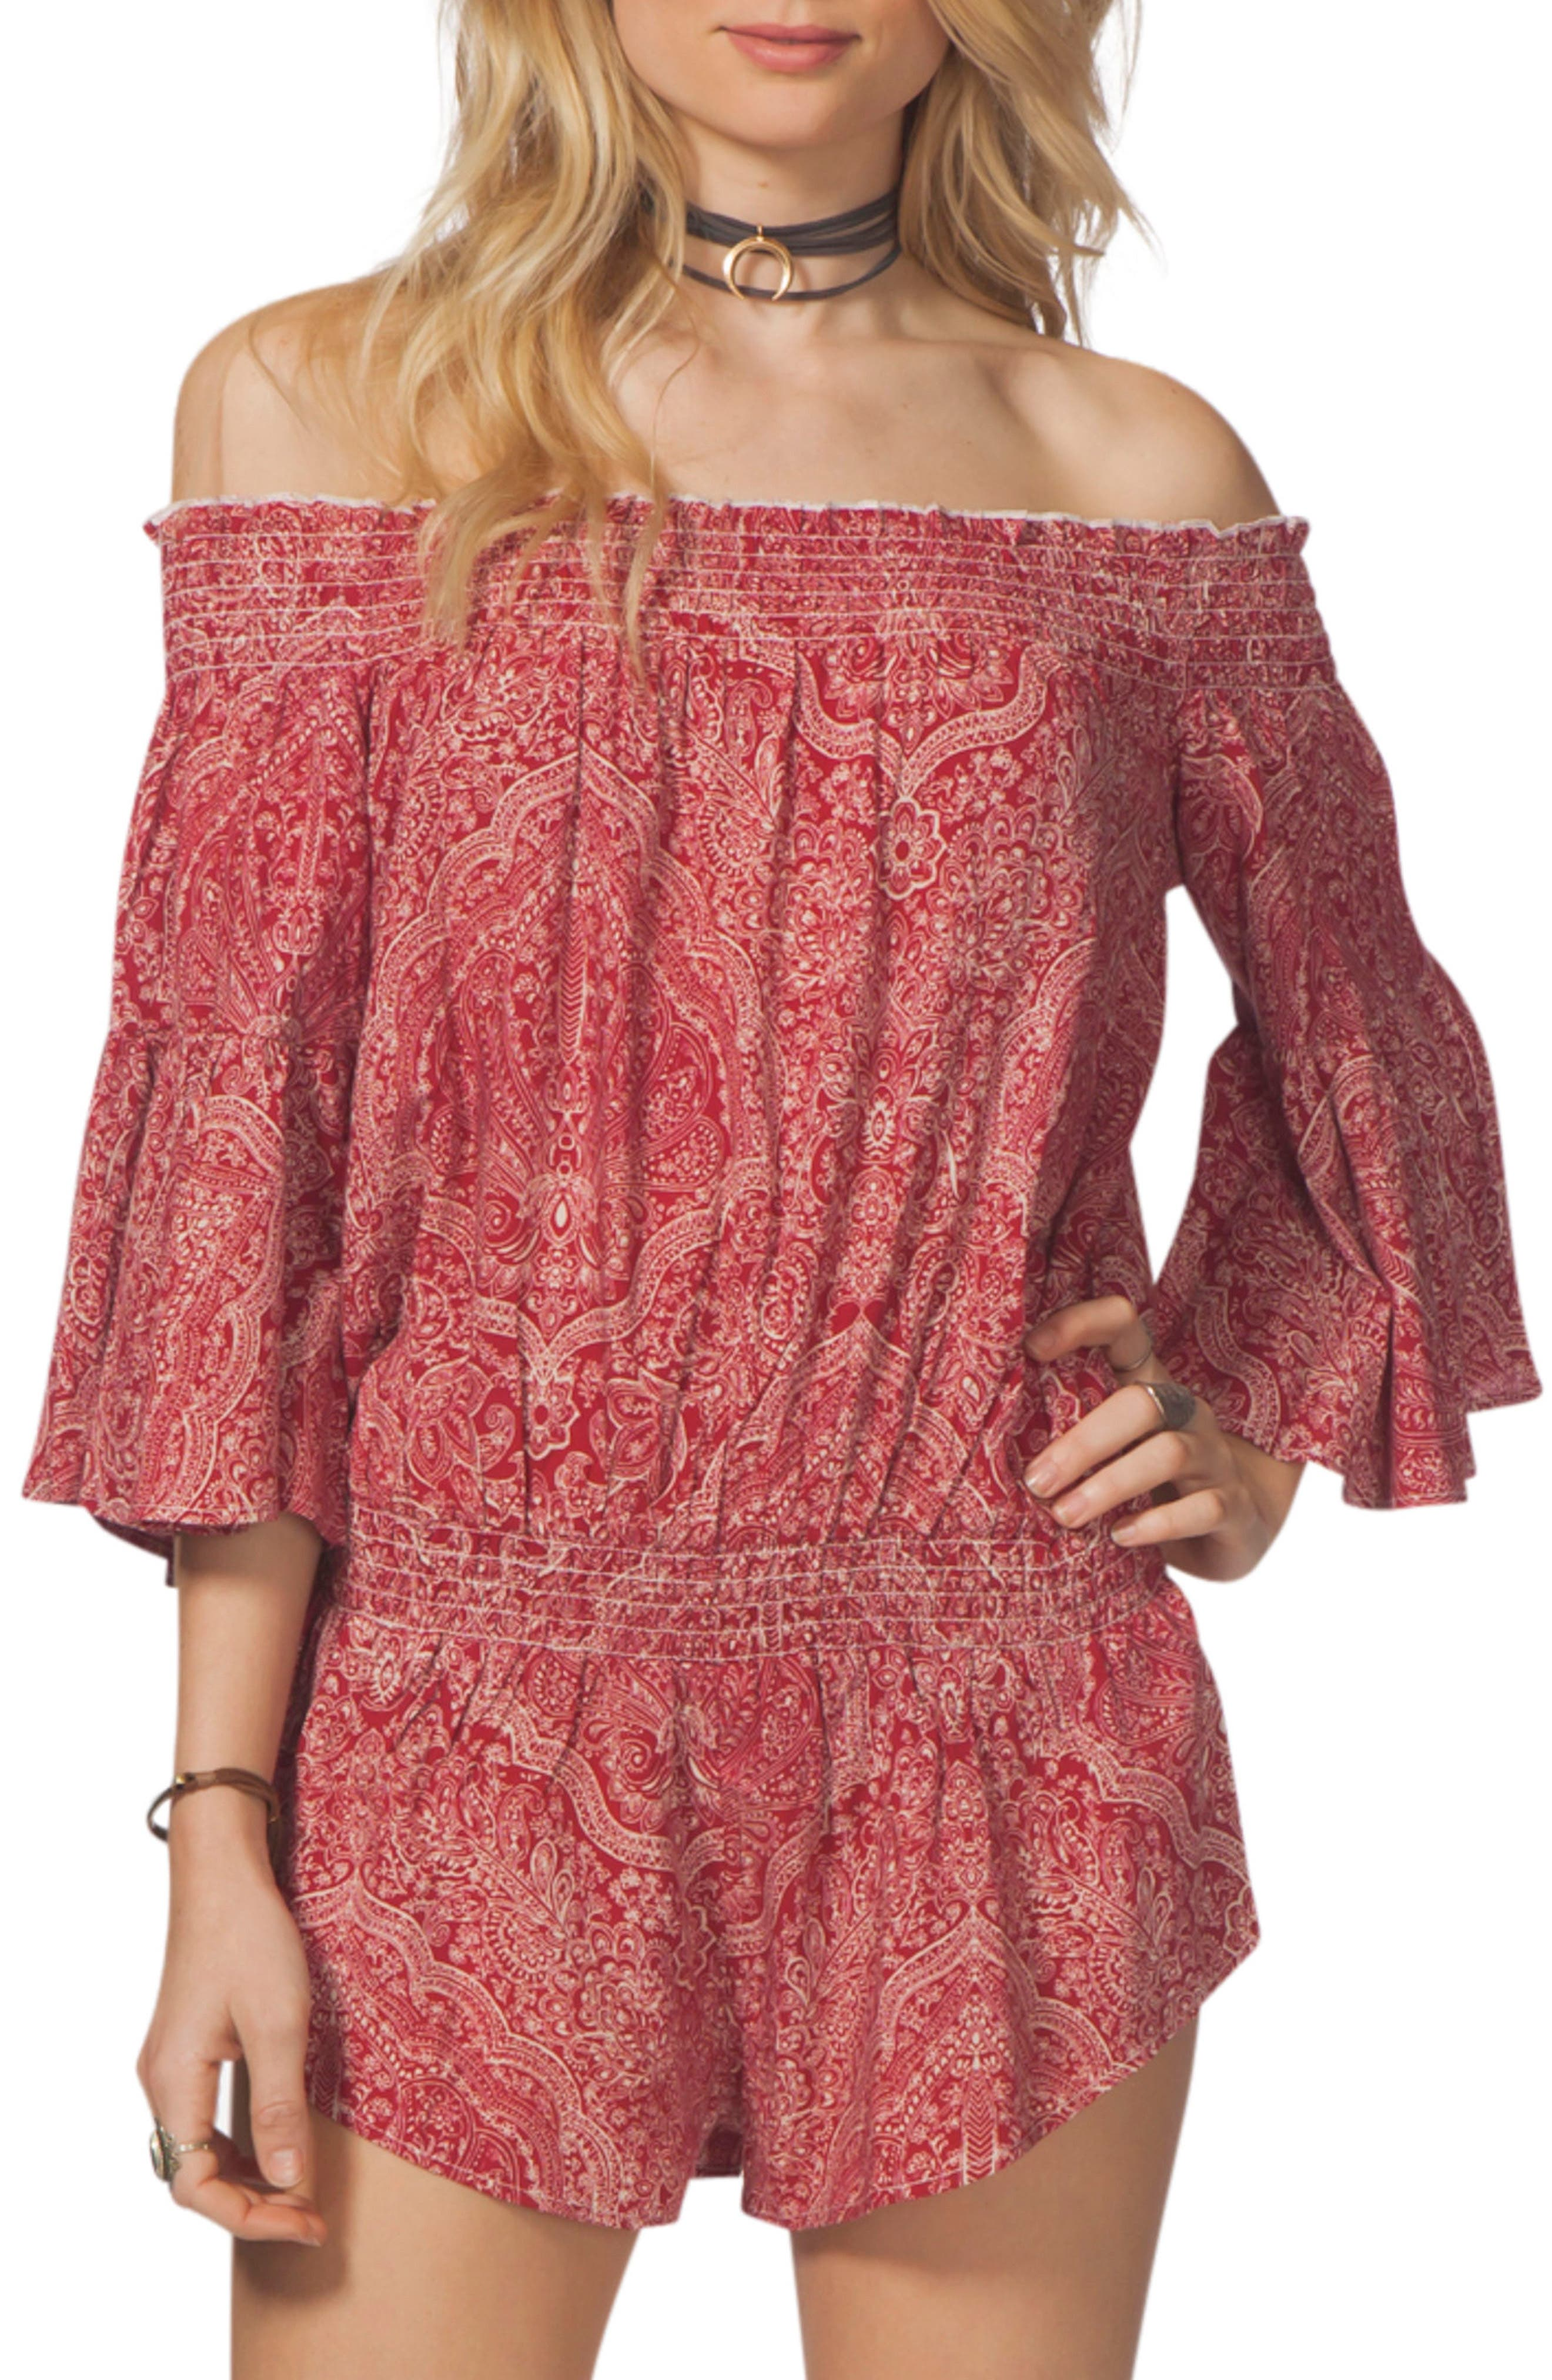 Main Image - Rip Curl Everglow Paisley Print Off the Shoulder Romper